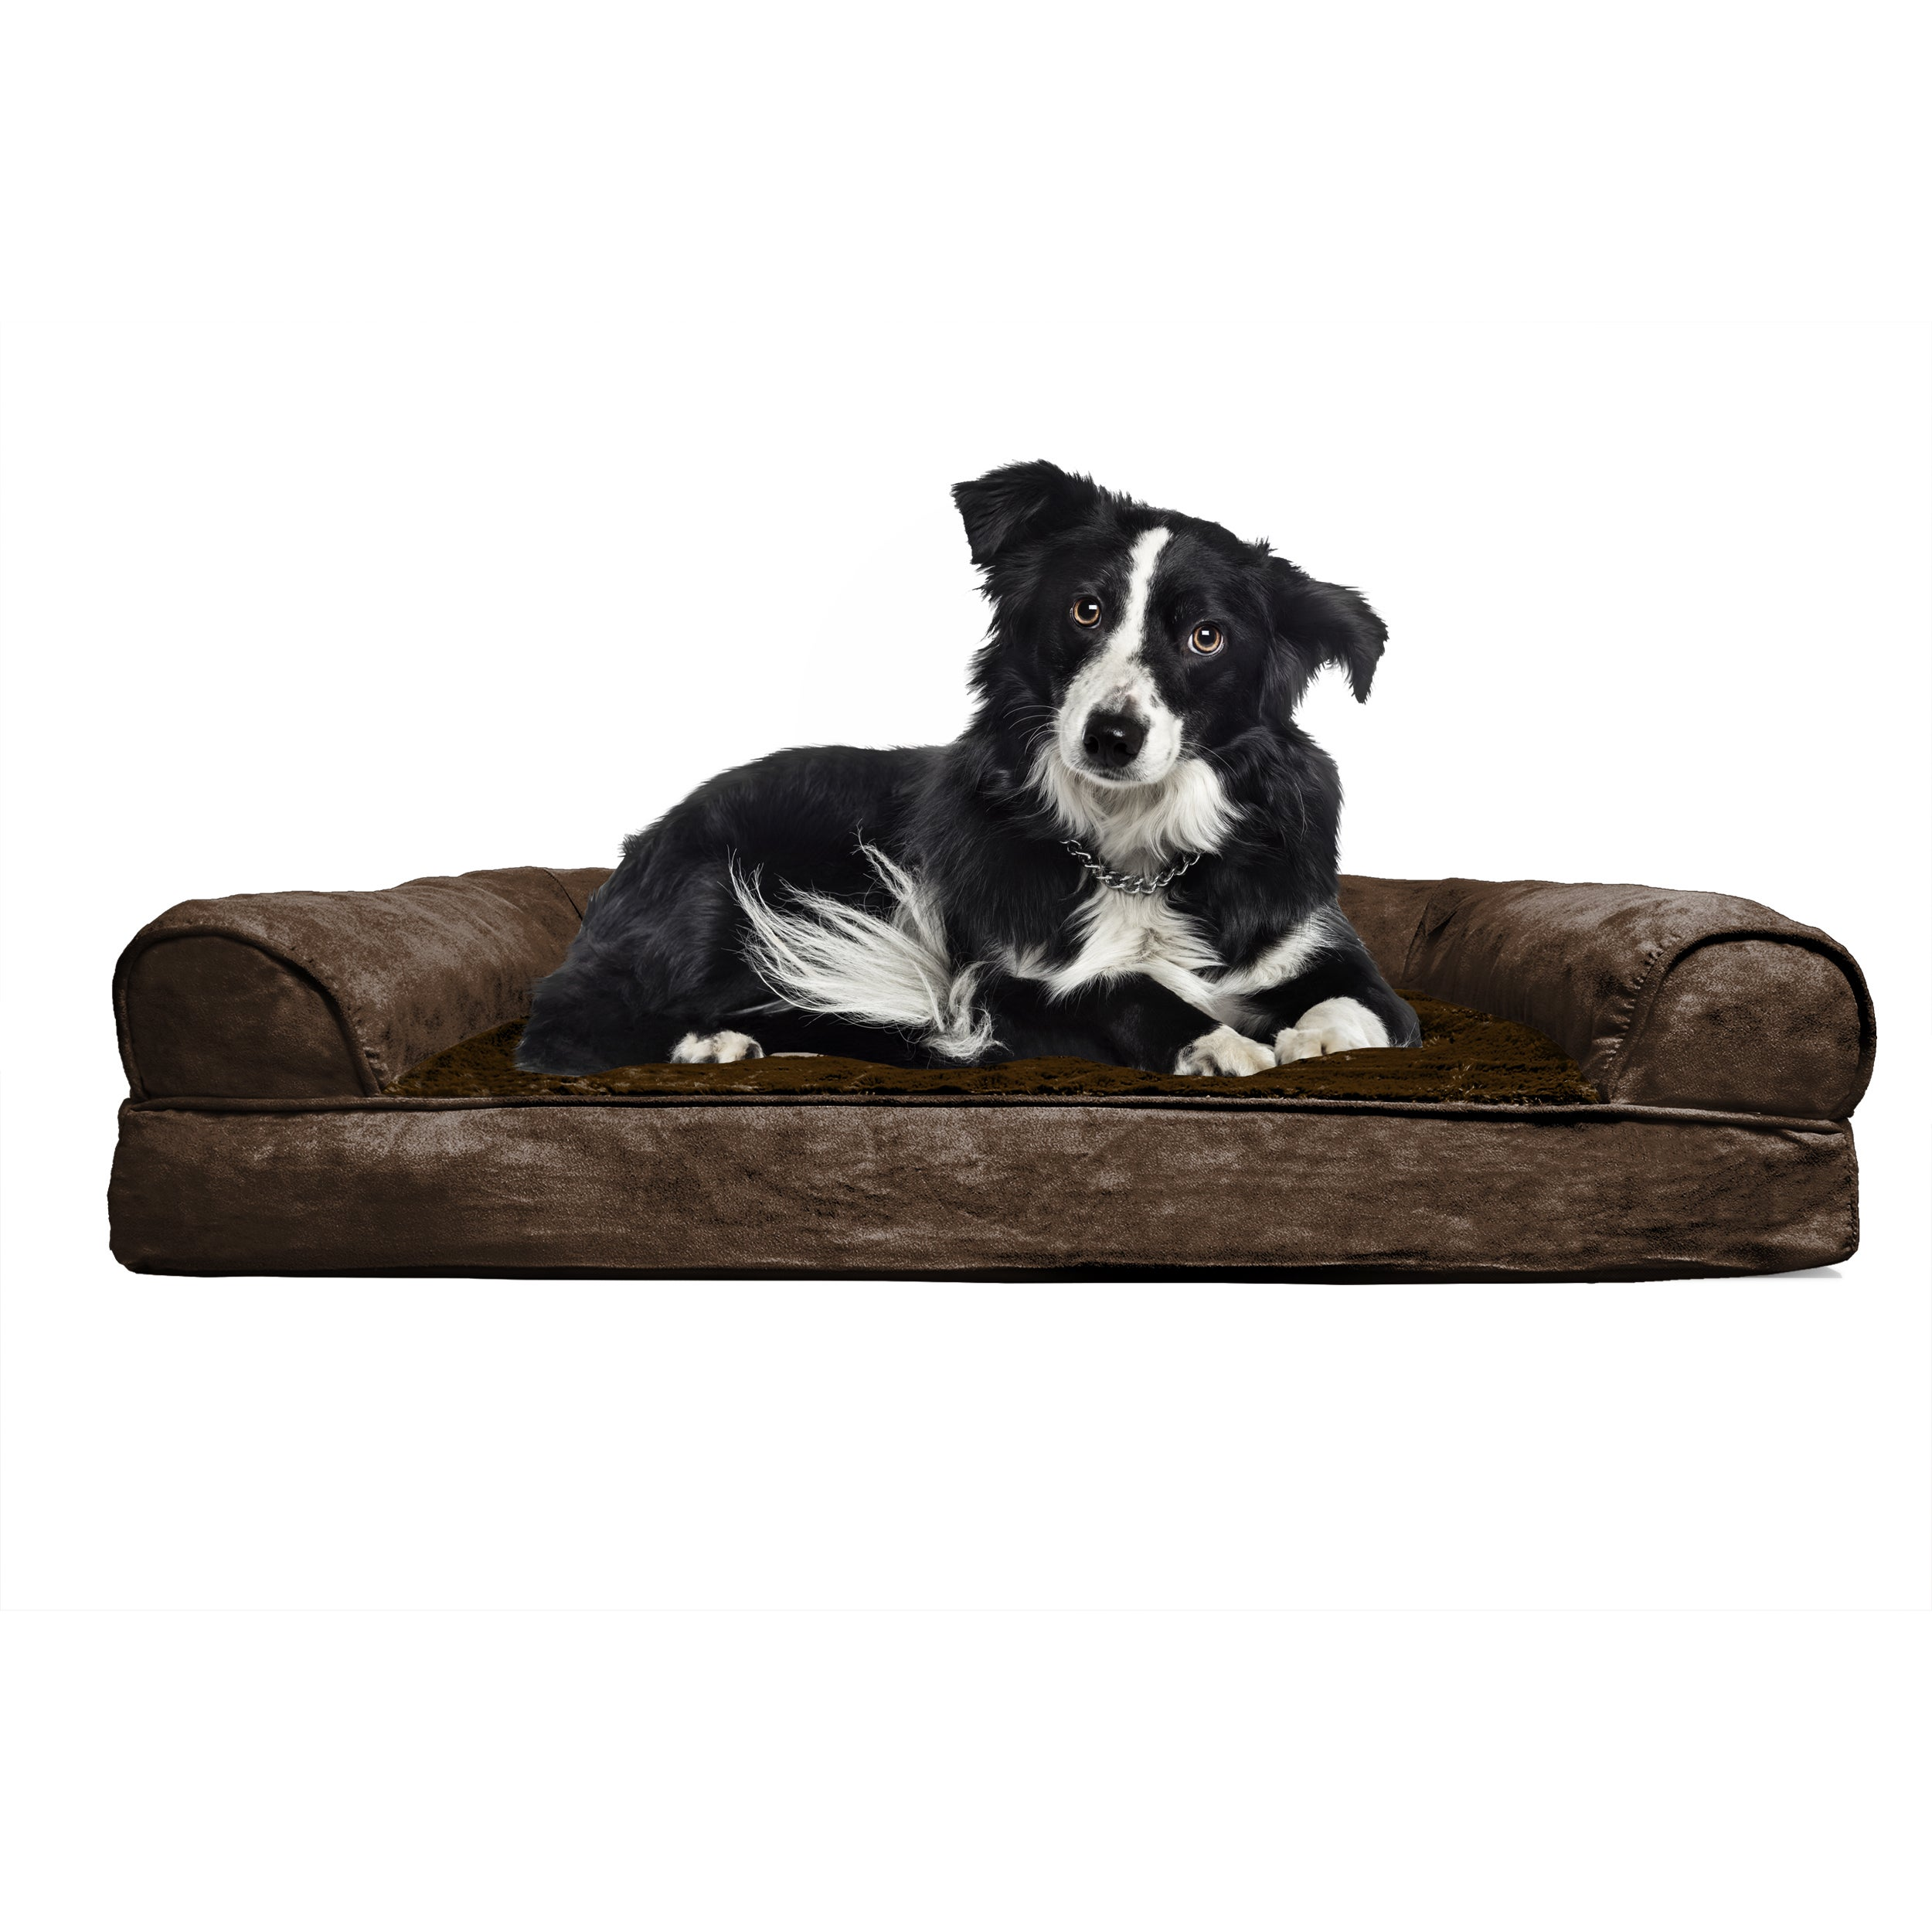 Furhaven Plush Suede Sofa Style Orthopedic Bolster Pet Bed Free Shipping On Orders Over 45 12924391